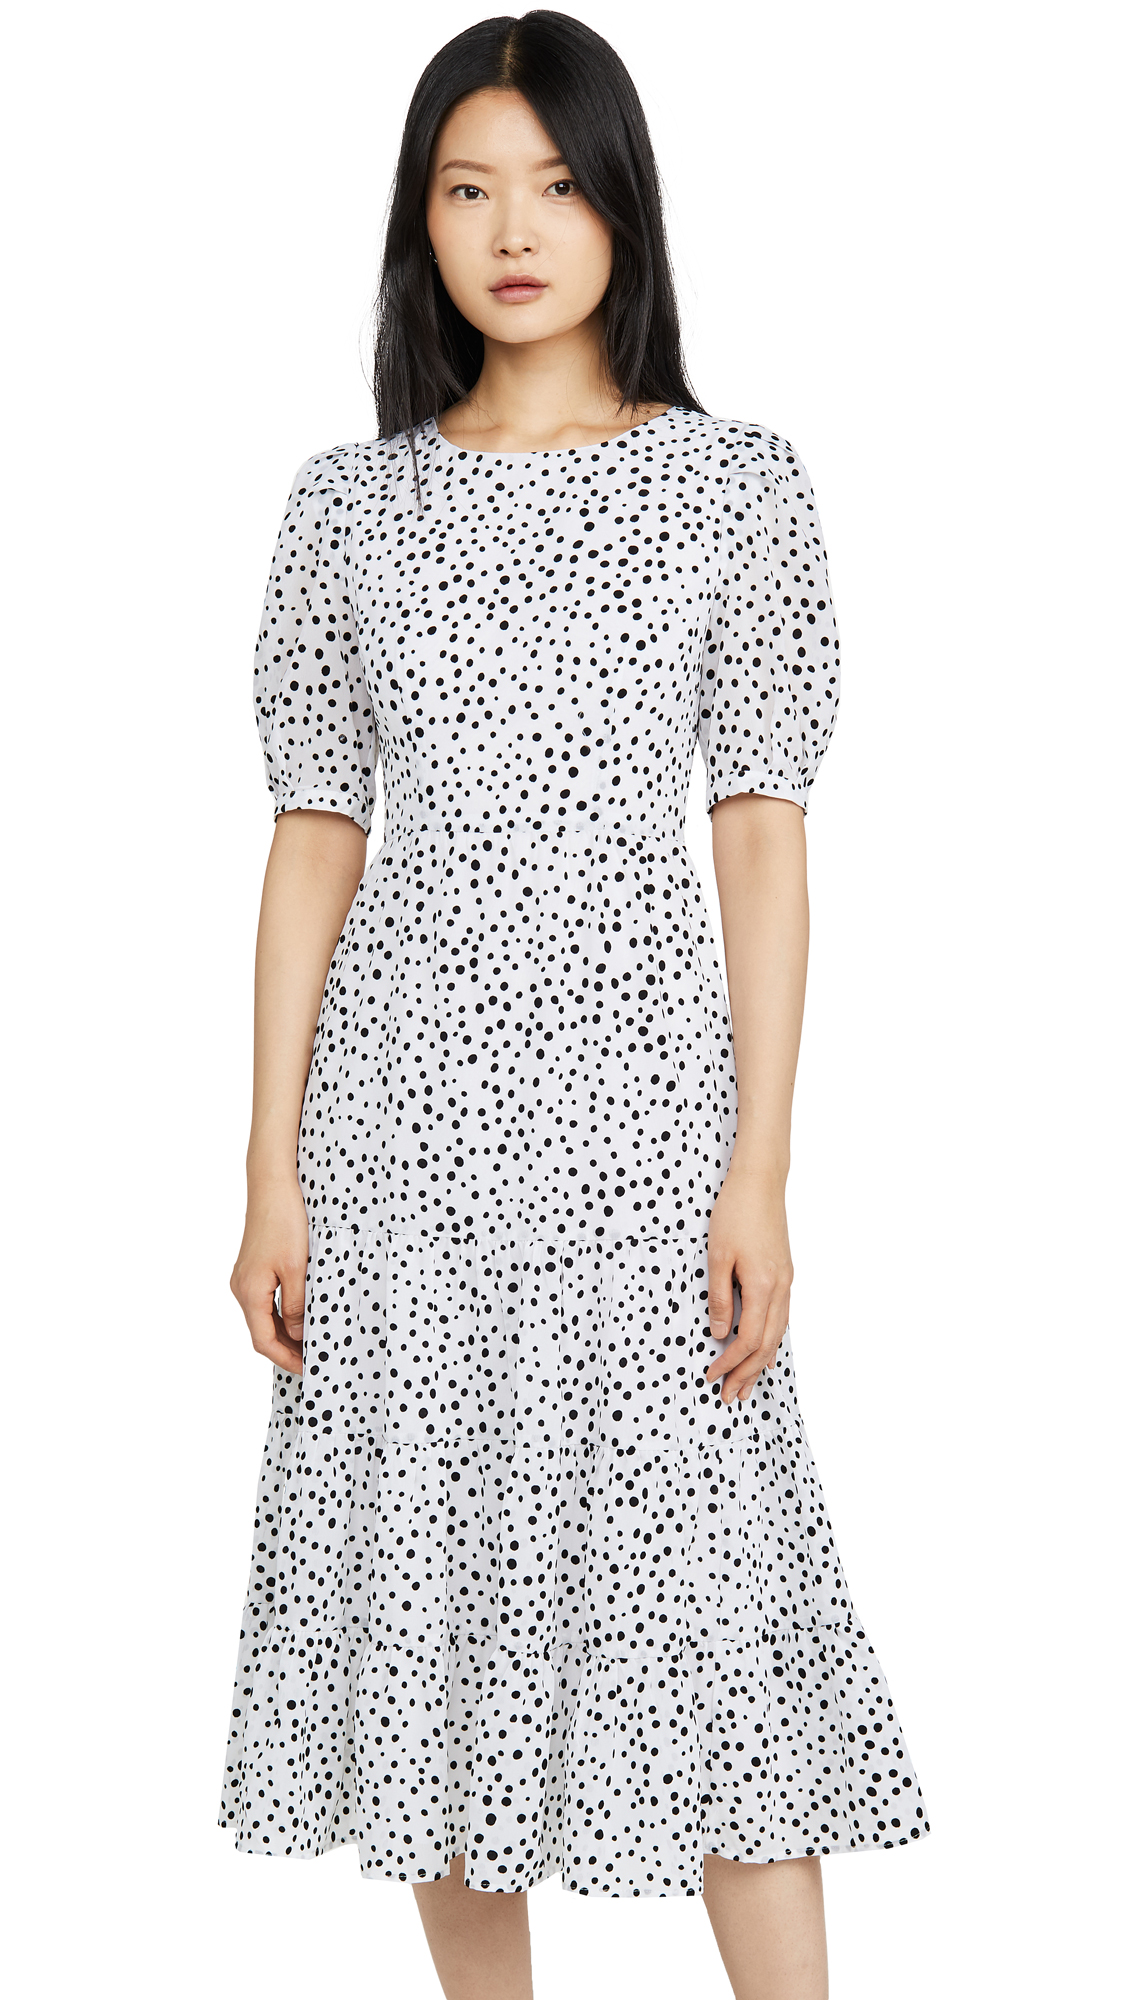 BB Dakota Something About Dots Dress - 30% Off Sale